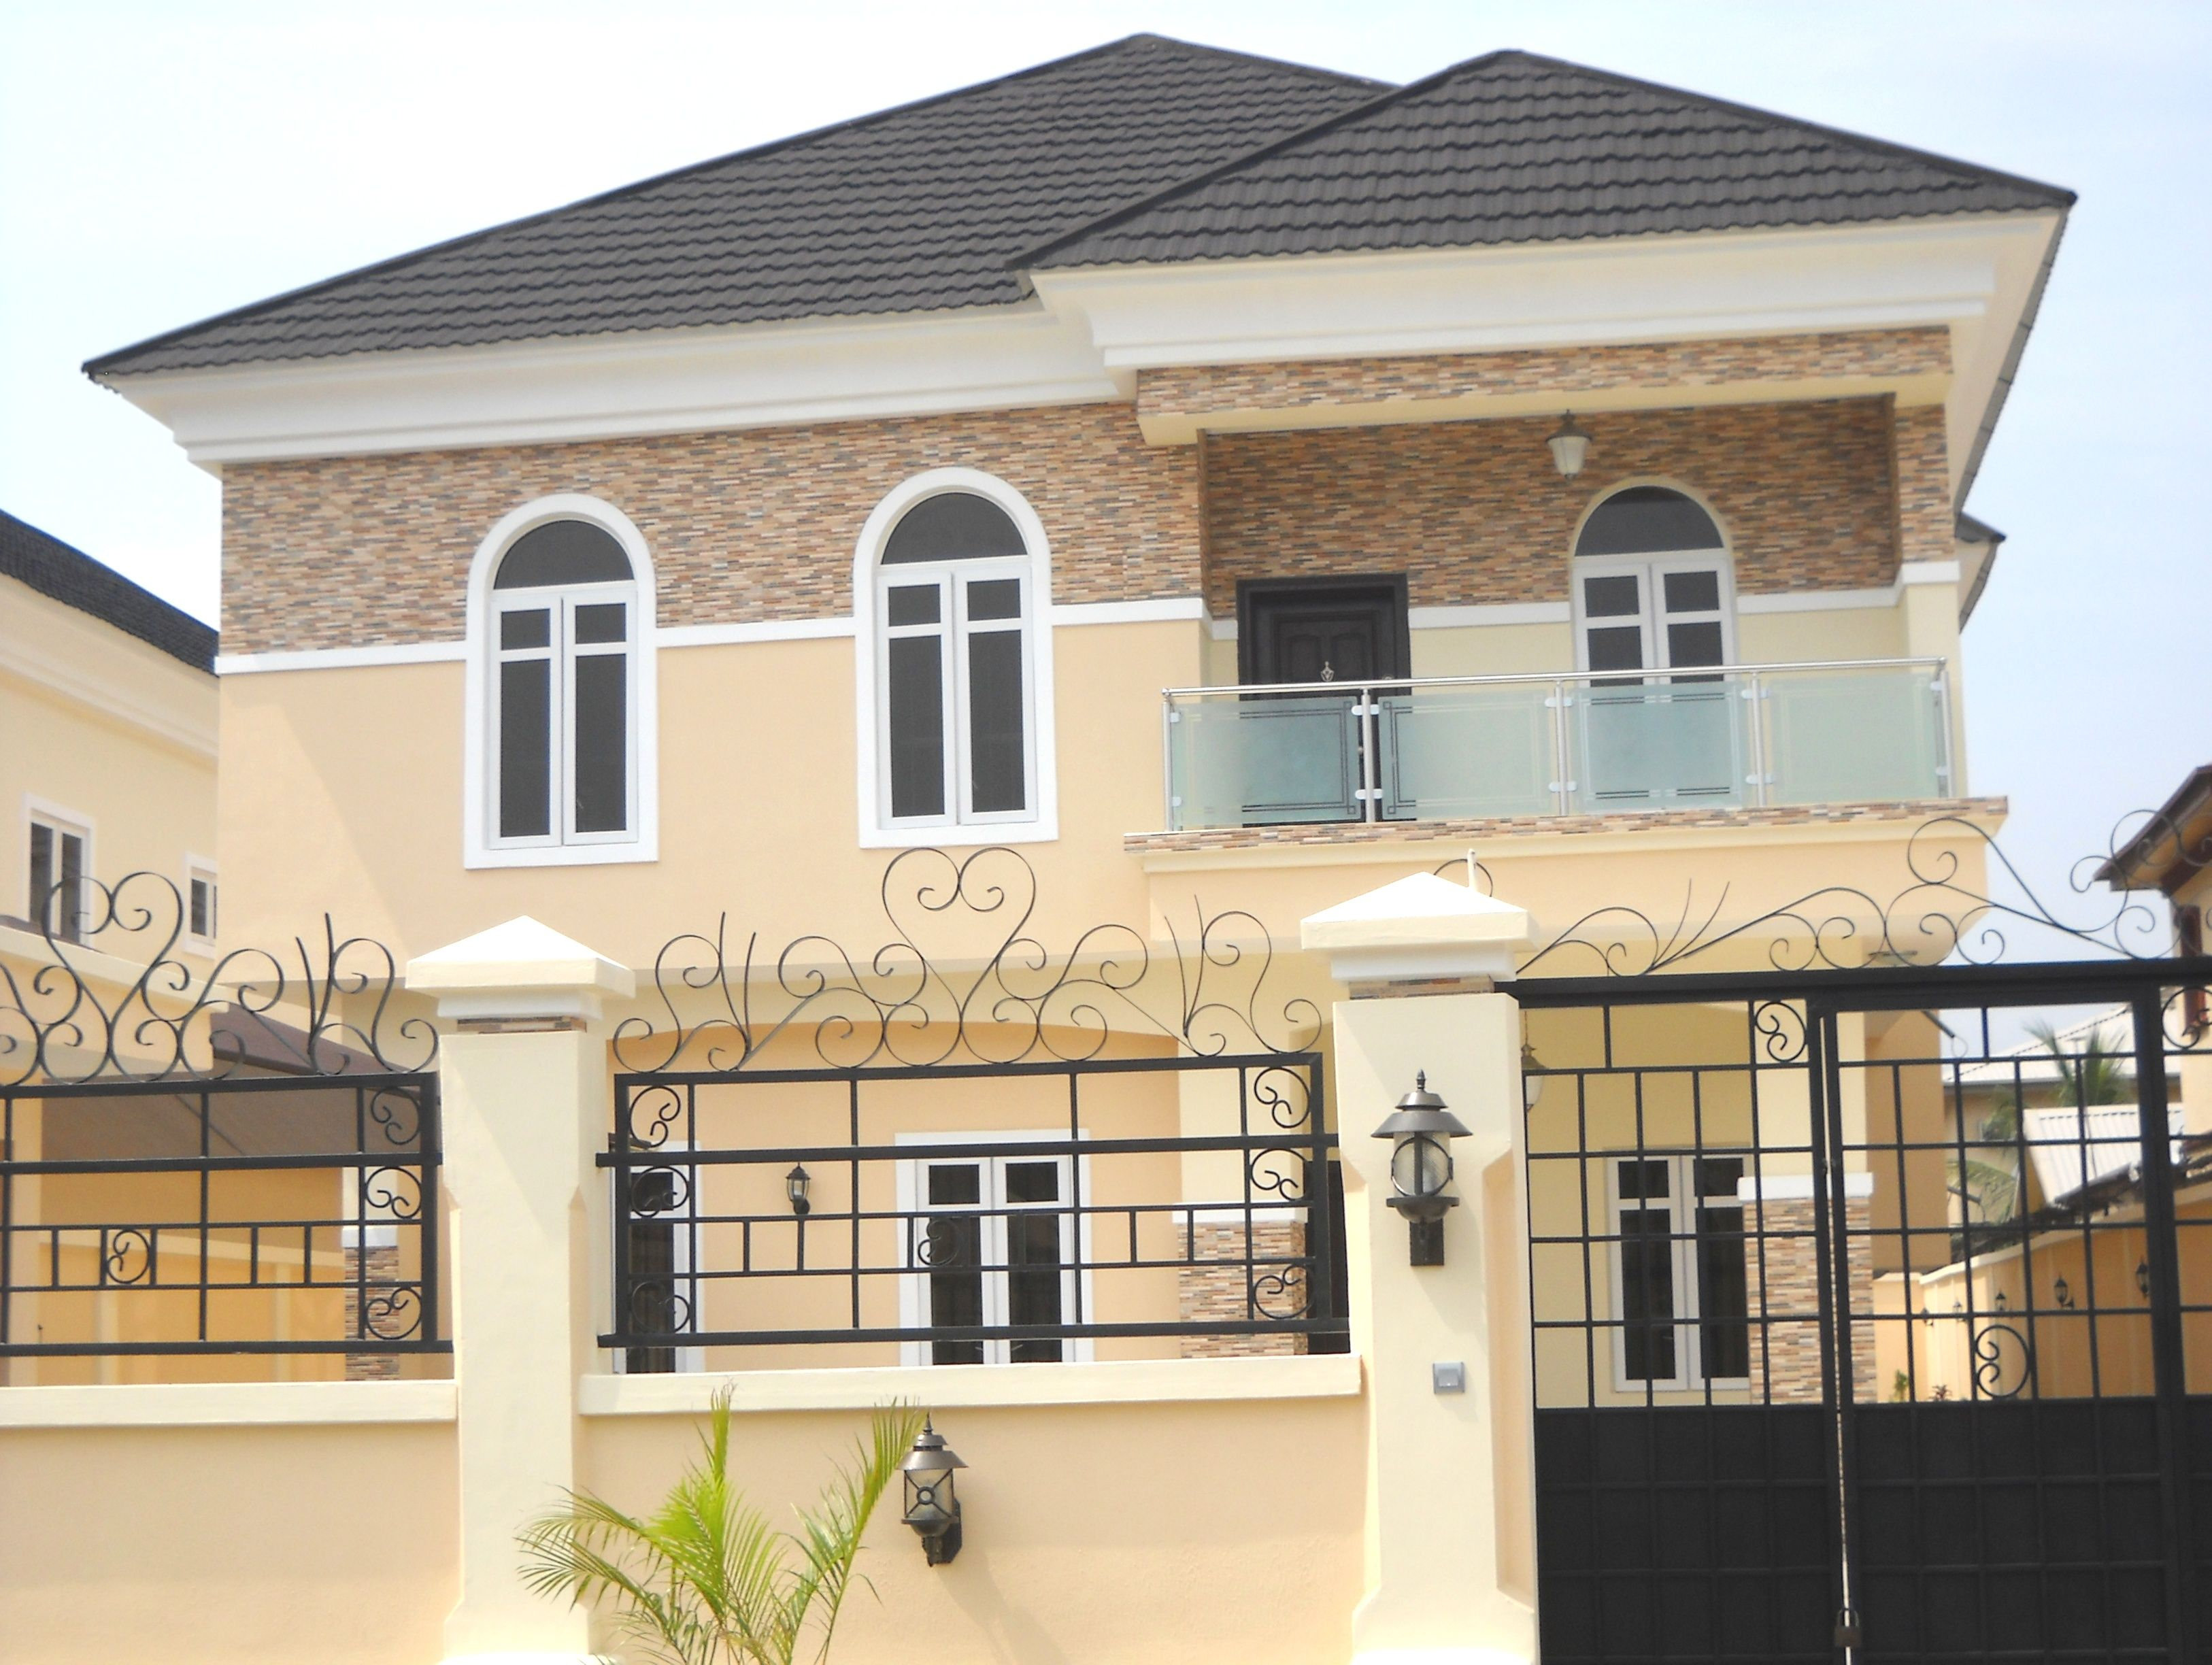 Own beautiful houses in Nigeria - village, Lagos (island/lekki ... on landscape idea for the front of your house, front walkways to house, frontrunners landscape designs house, landscaping near house,